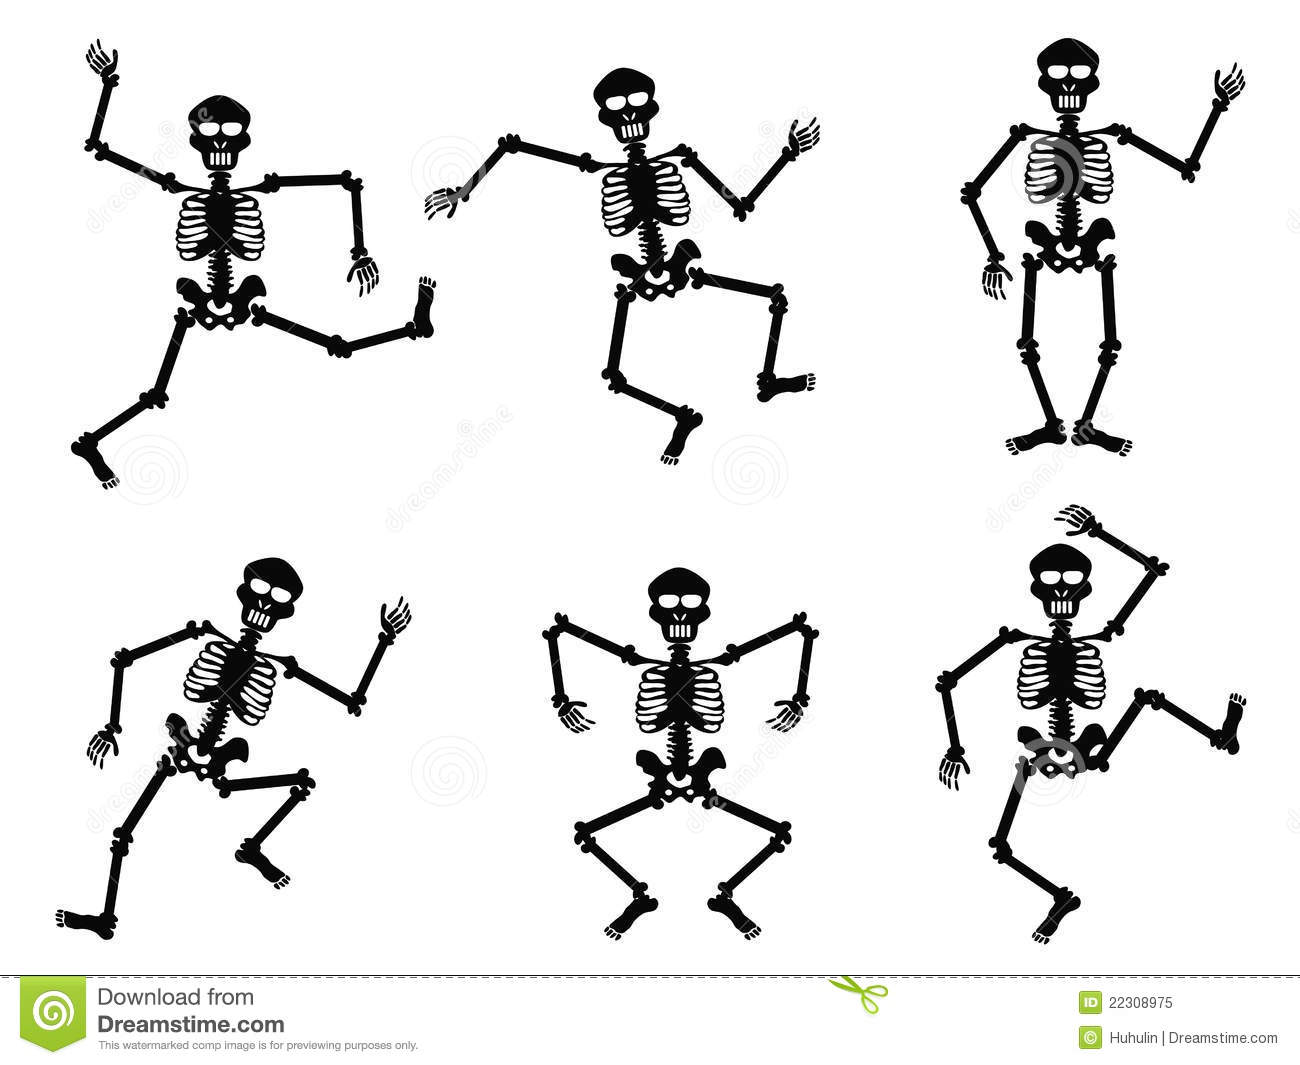 Royalty Free Stock Photo Skeletons Dancing Image22308975 likewise Stock Image Small Cat Hand Image5261321 in addition Black White Lion Cubs Bull Bulls Rock Colorful additionally 53114 Delicate Floral Frames Vector further 56515. on funny black people